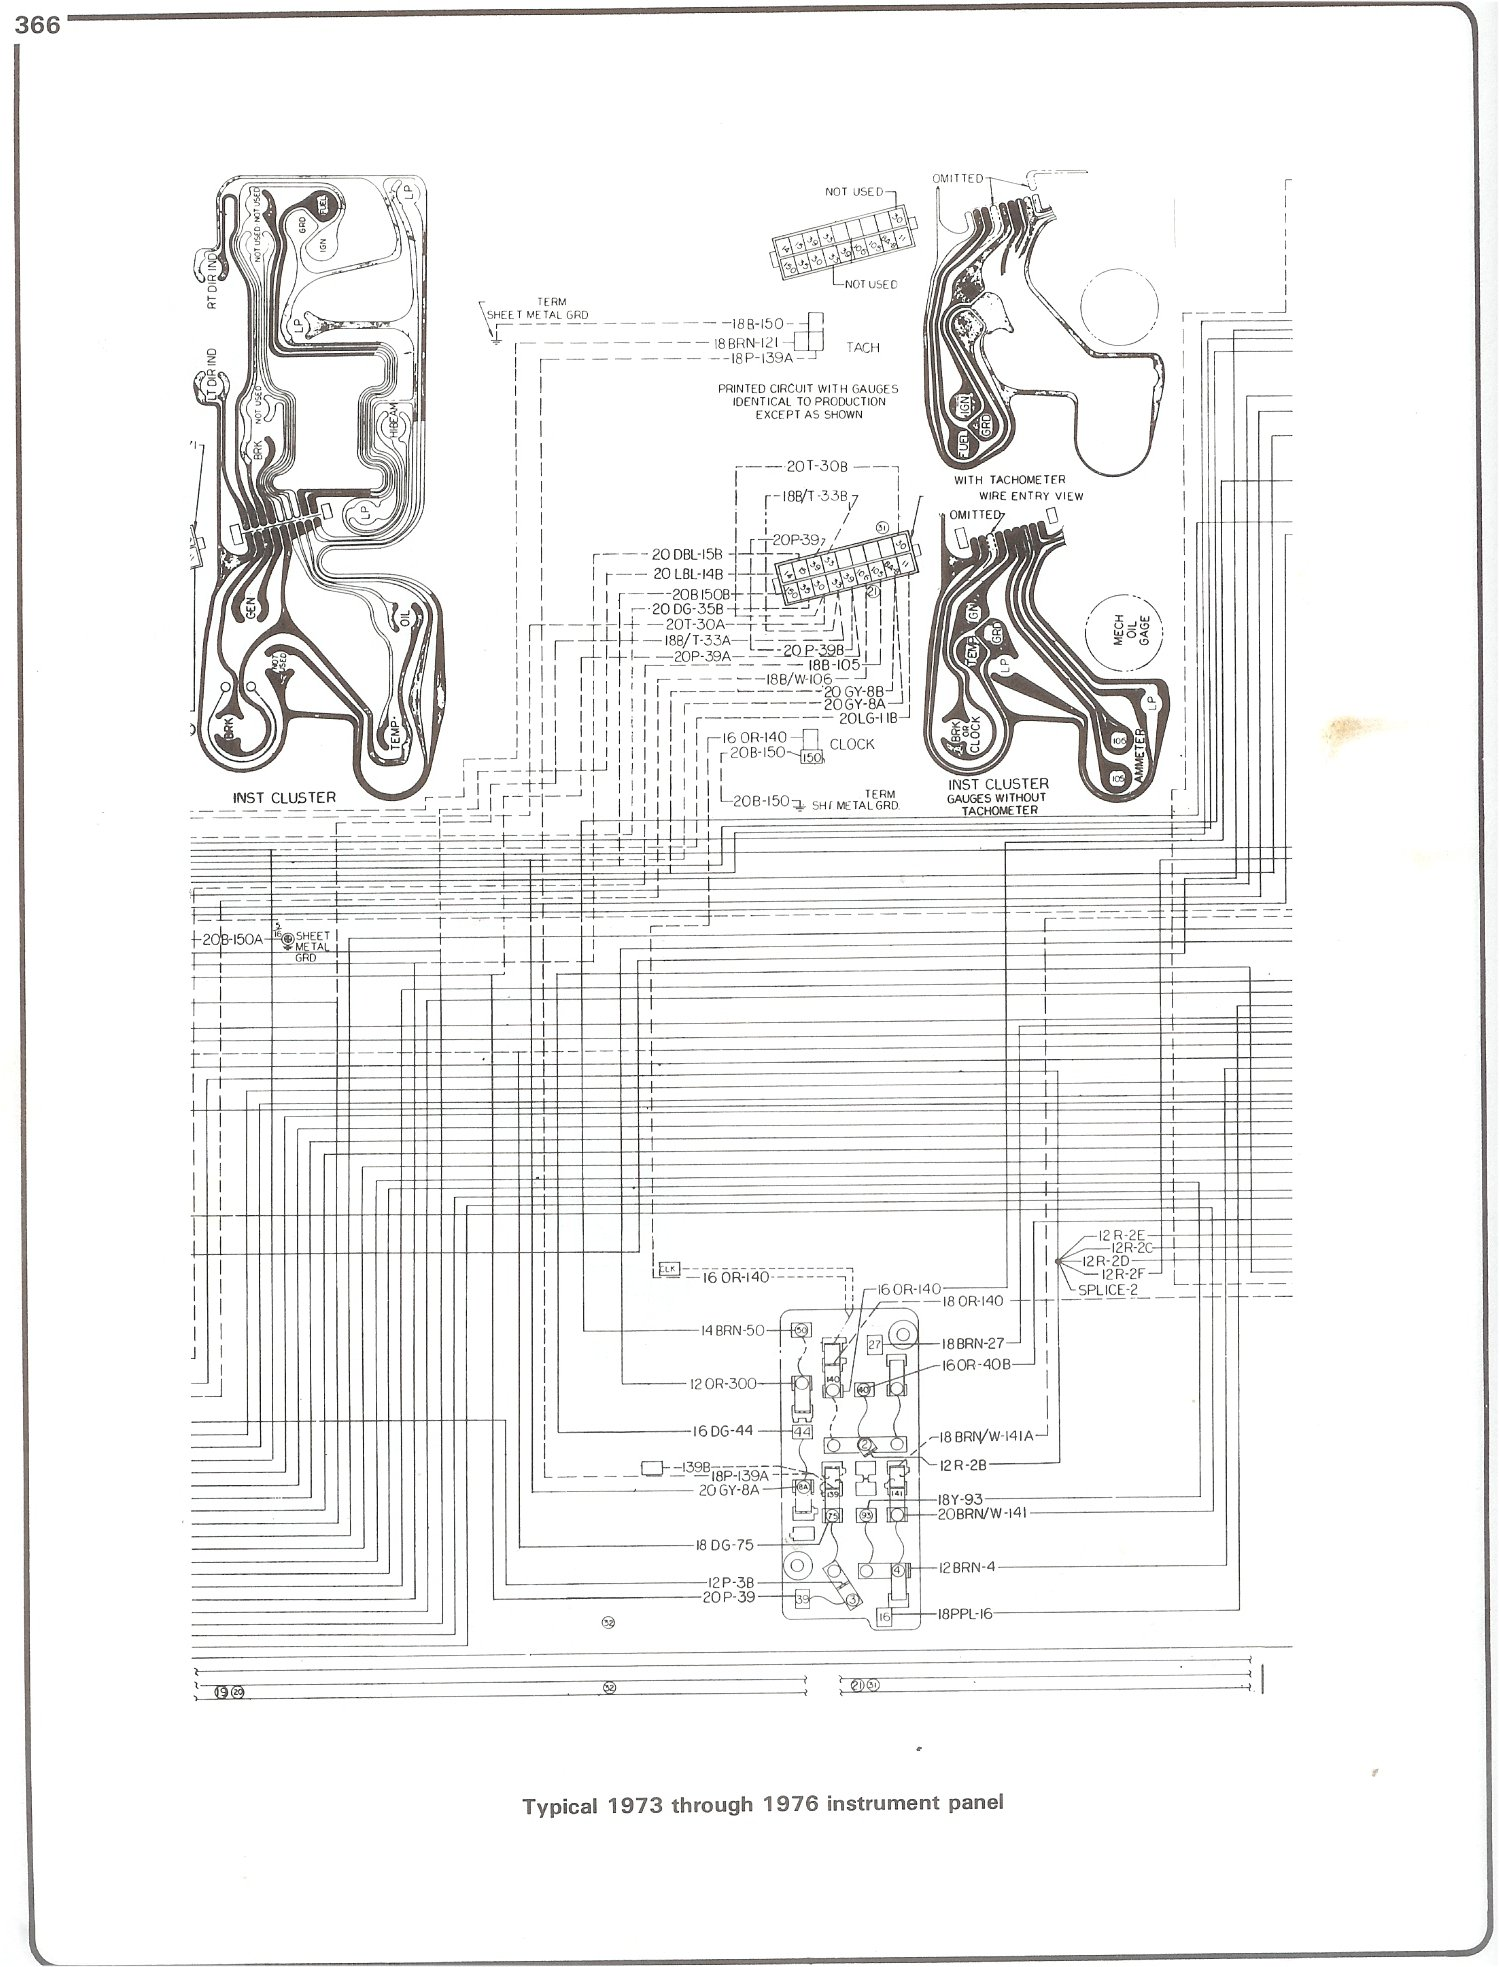 73 76_instrument complete 73 87 wiring diagrams 1984 chevy truck headlight wiring diagram at n-0.co